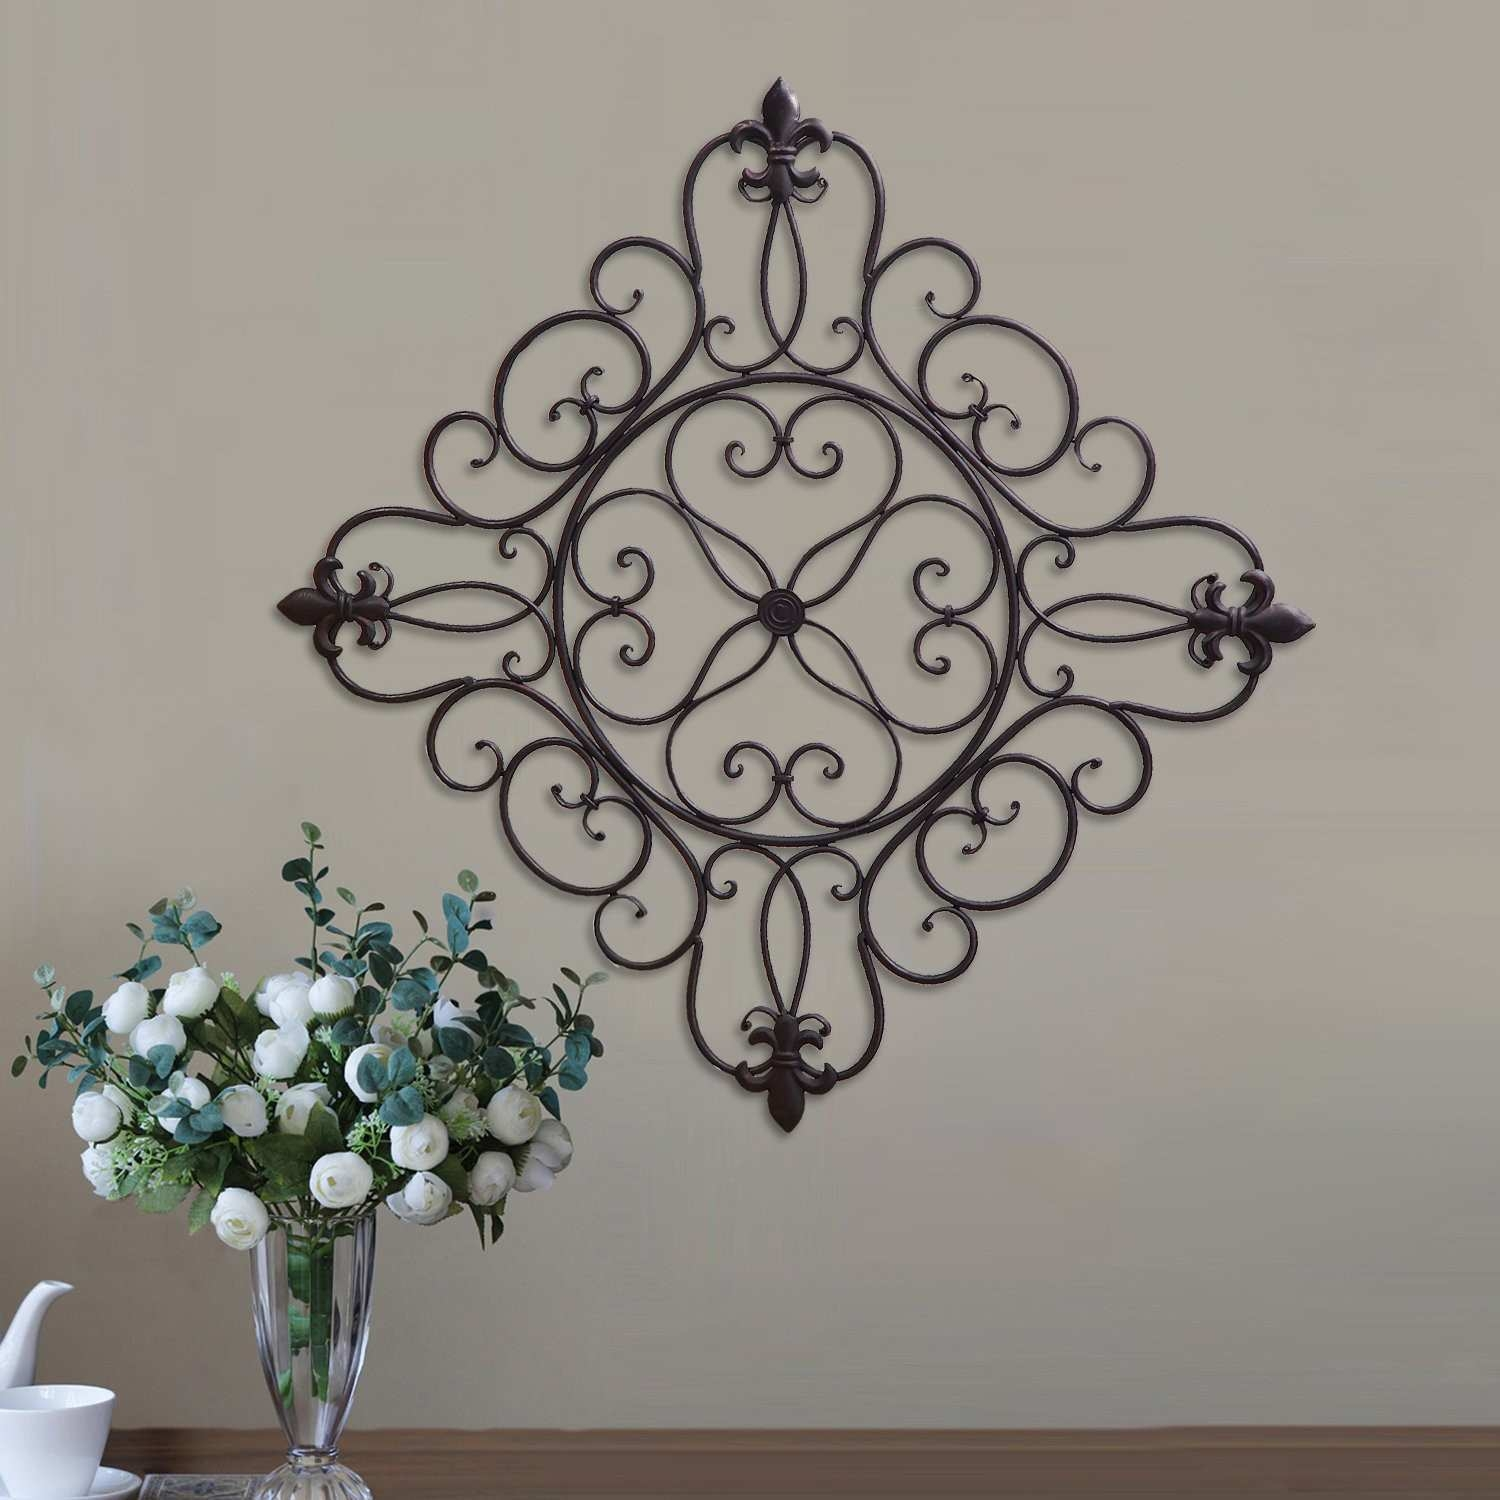 Alcott Hill Decorative Iron Square Hanging Scroll and Fleur de Lis Design Wall Décor